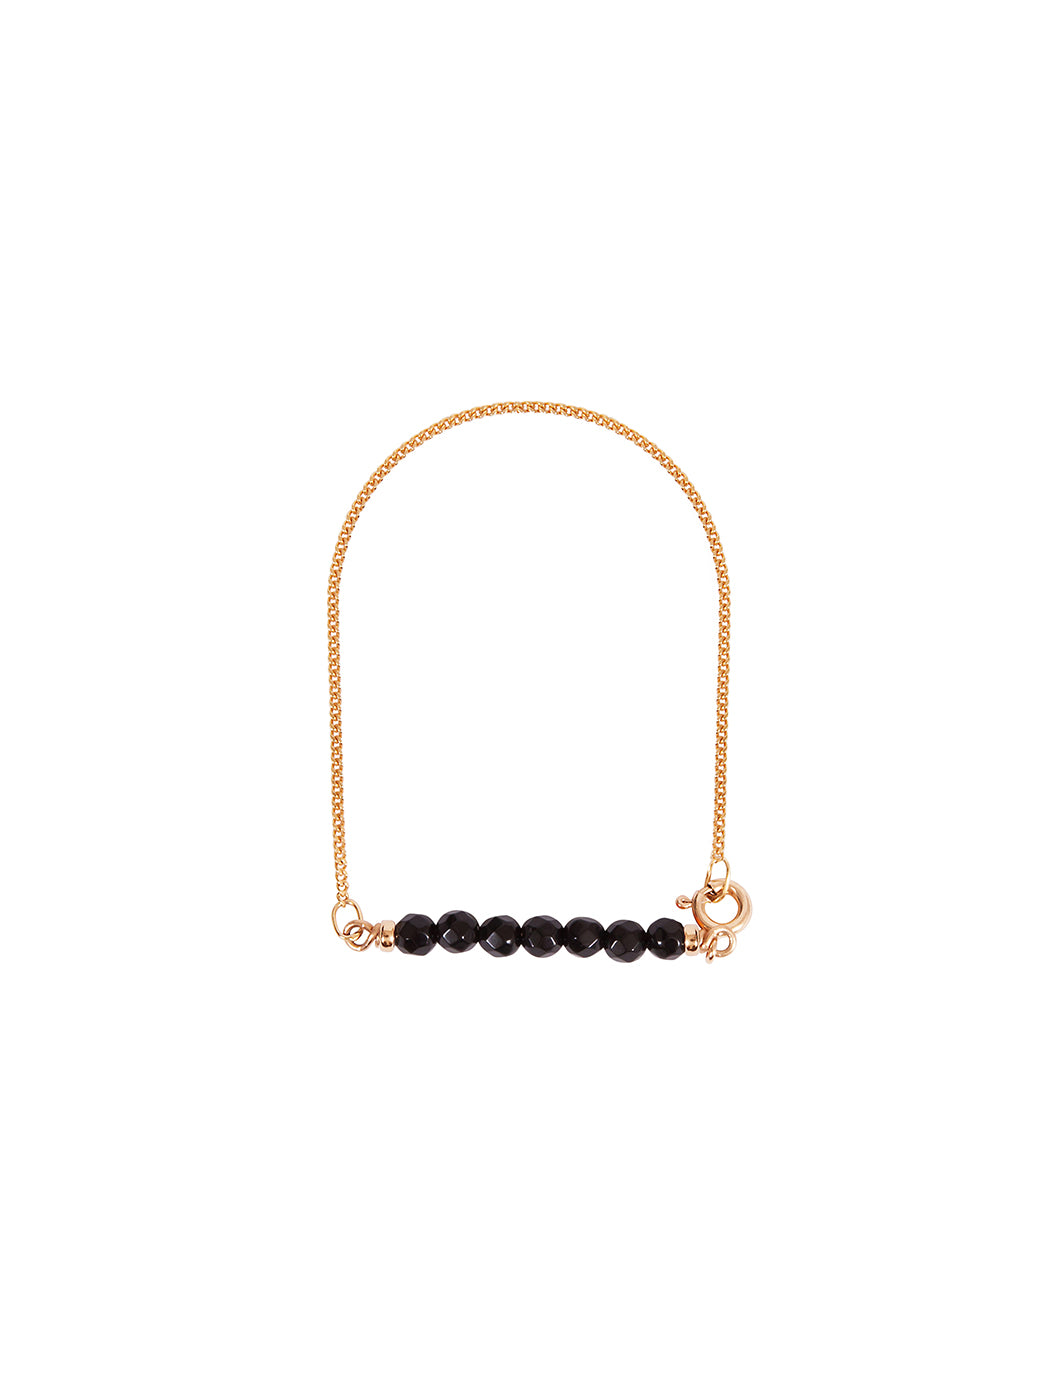 Fiorina Jewellery Gold Friendship Bracelet Black Onyx